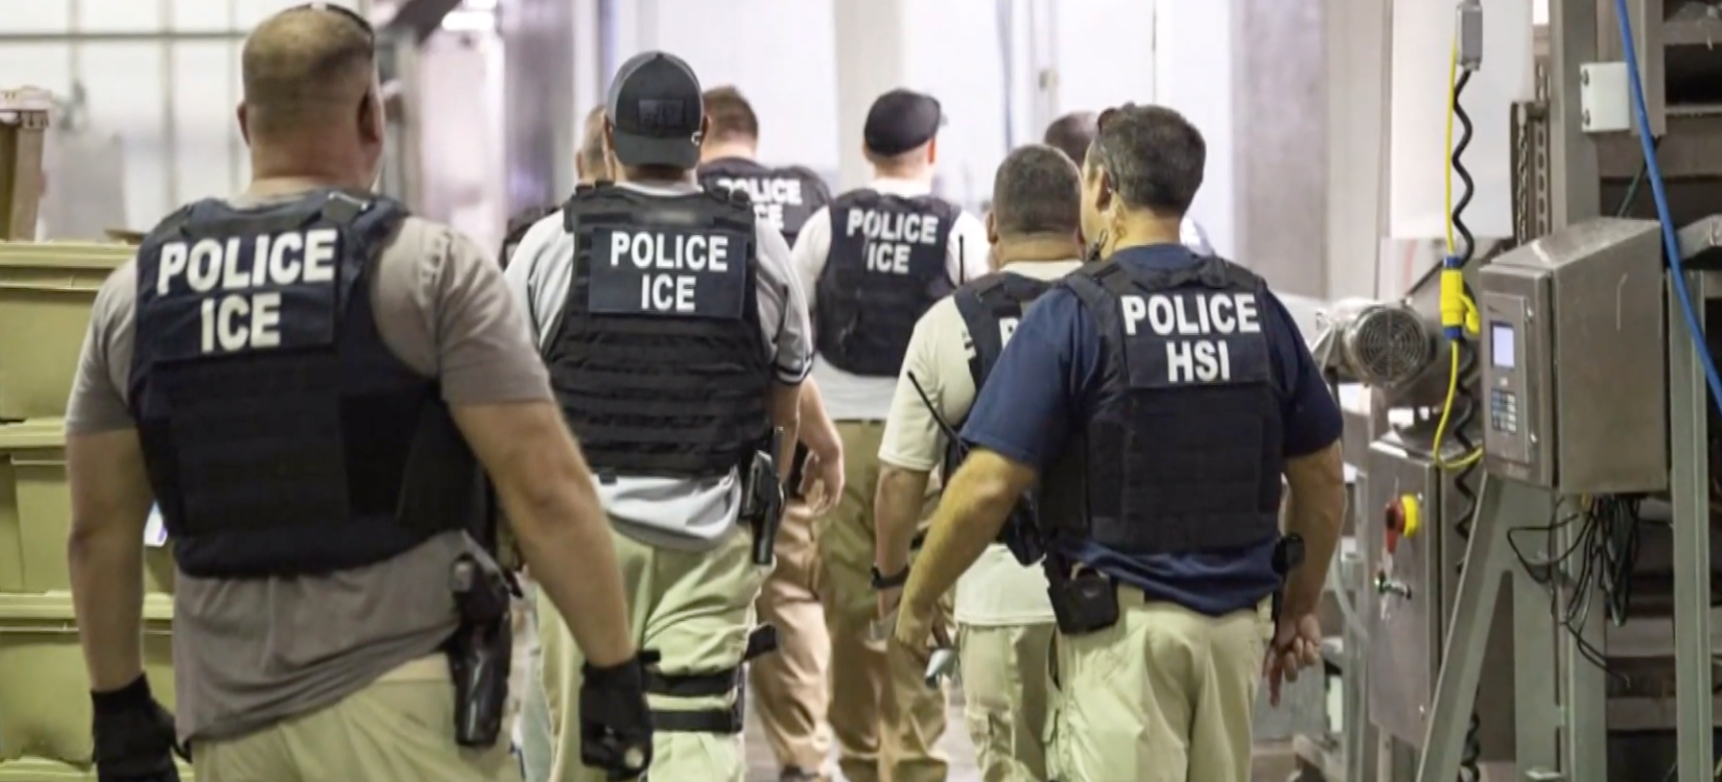 HSI, ICE, Police - Screenshot from PBS YouTube video